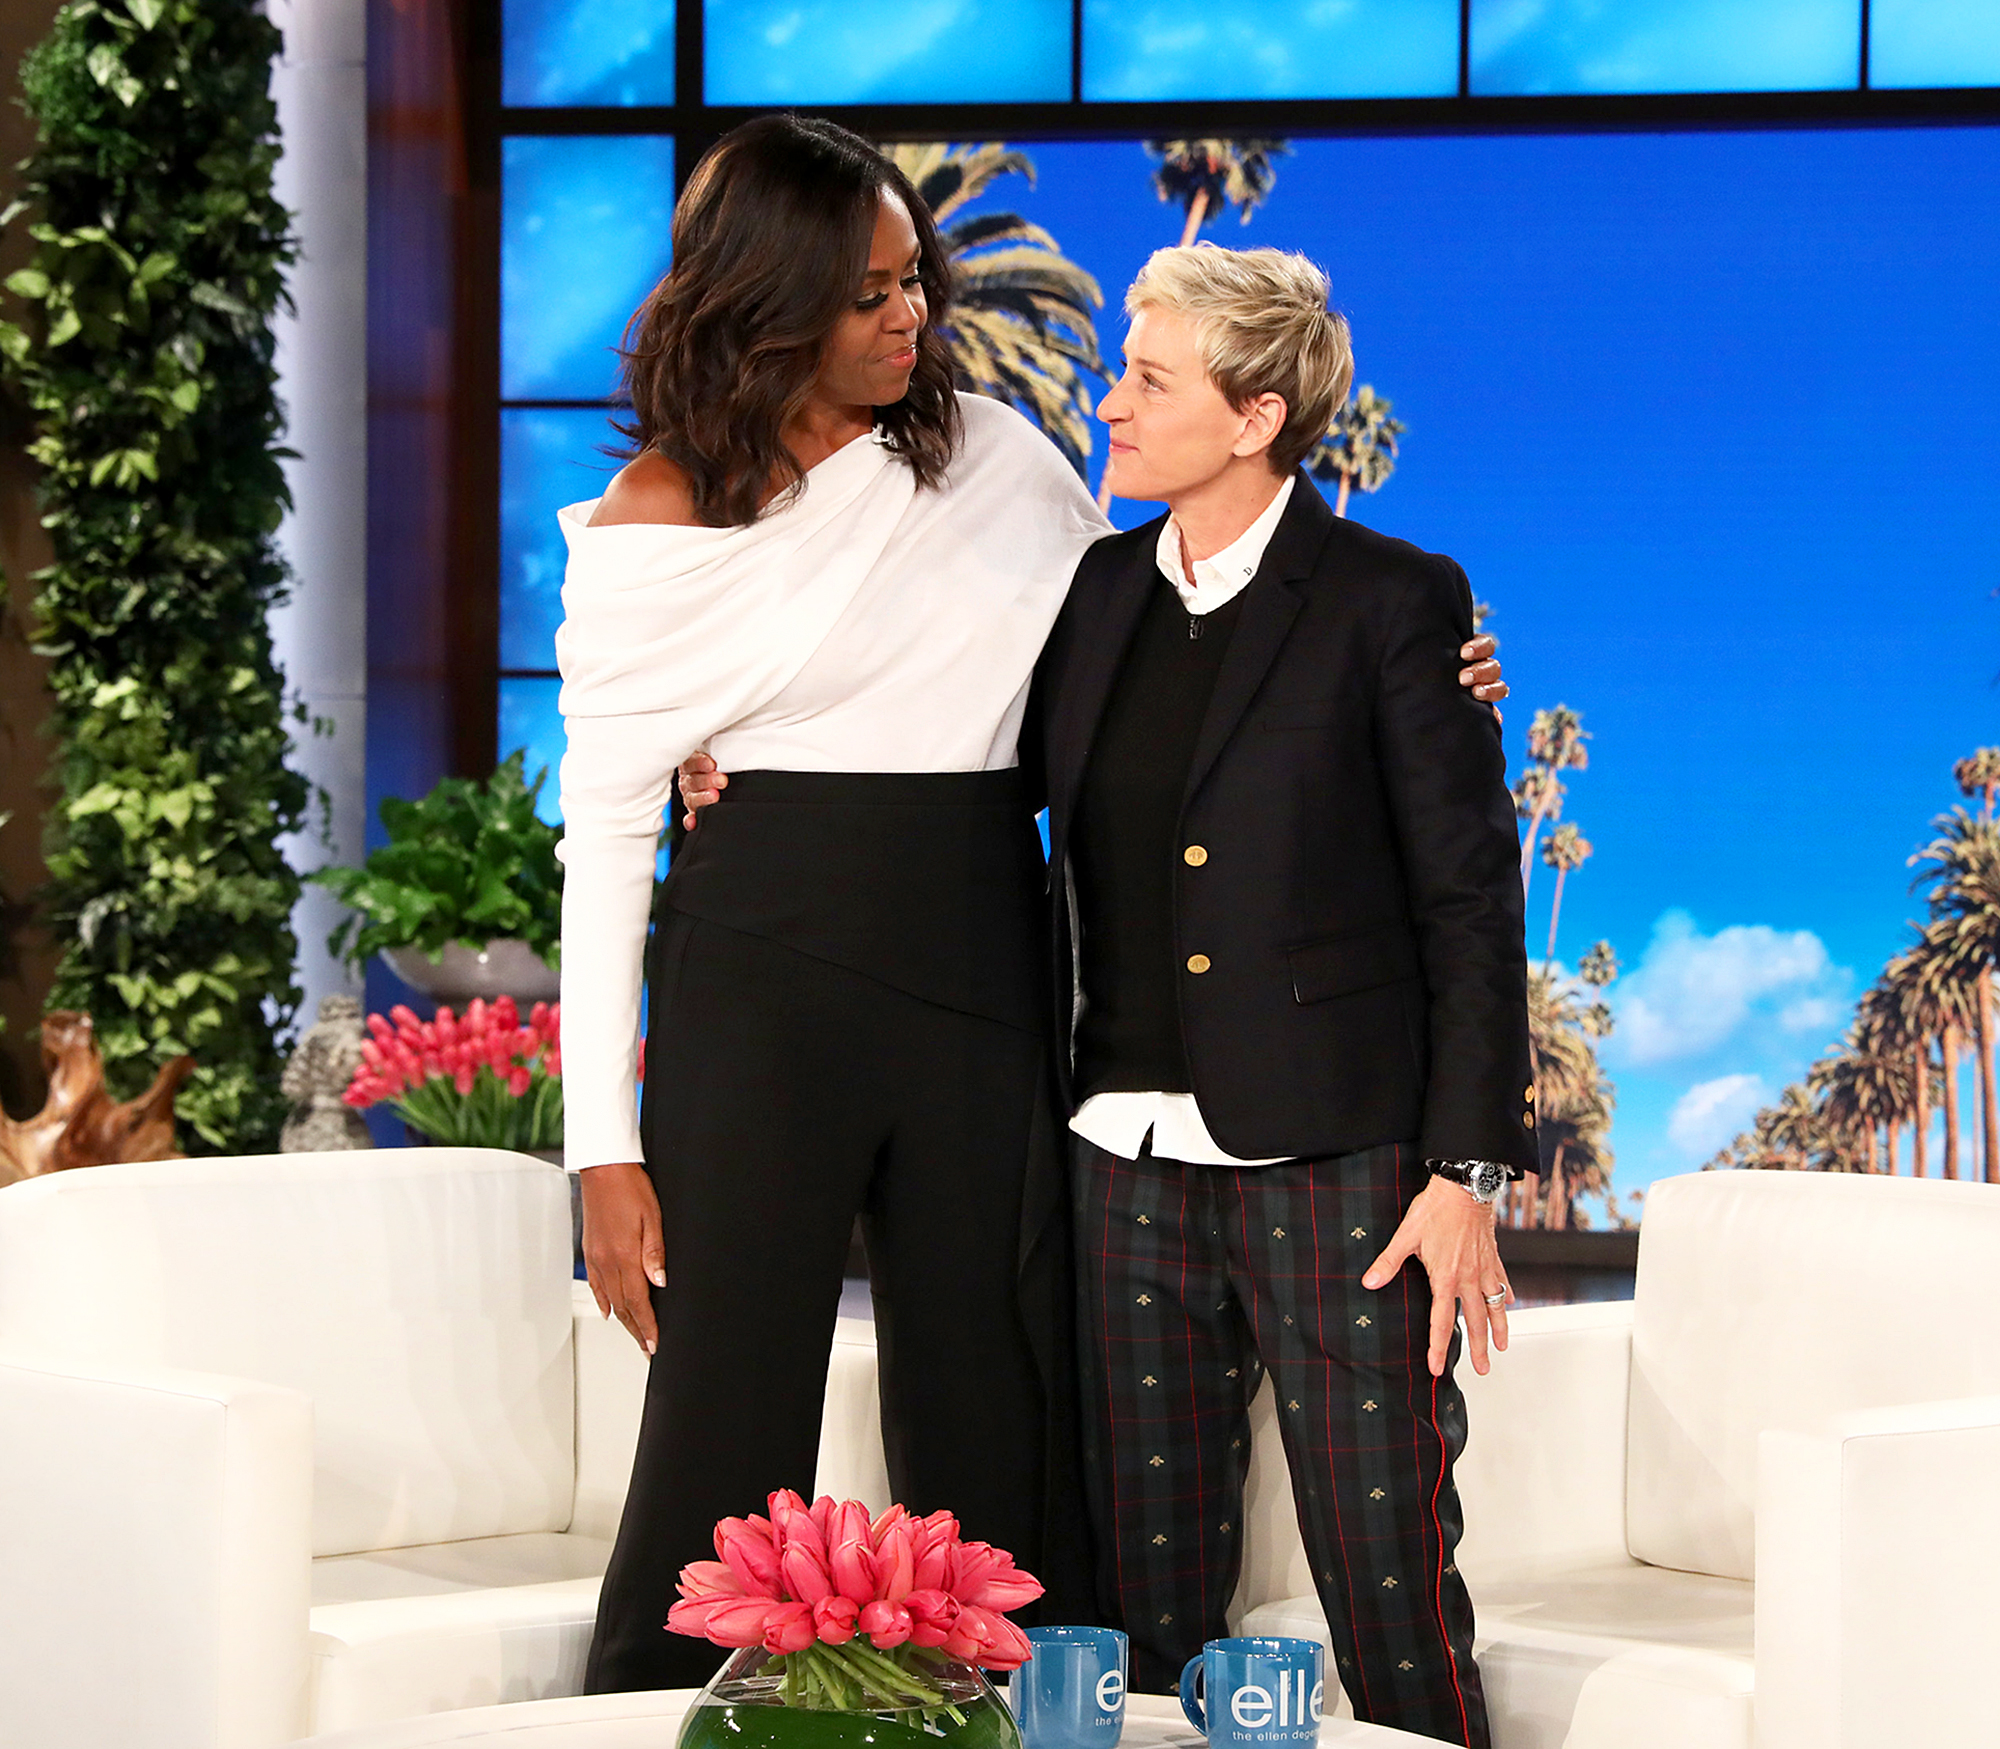 Michelle Obama reveals gift she received from Melania Trump during 'awkward' exchange